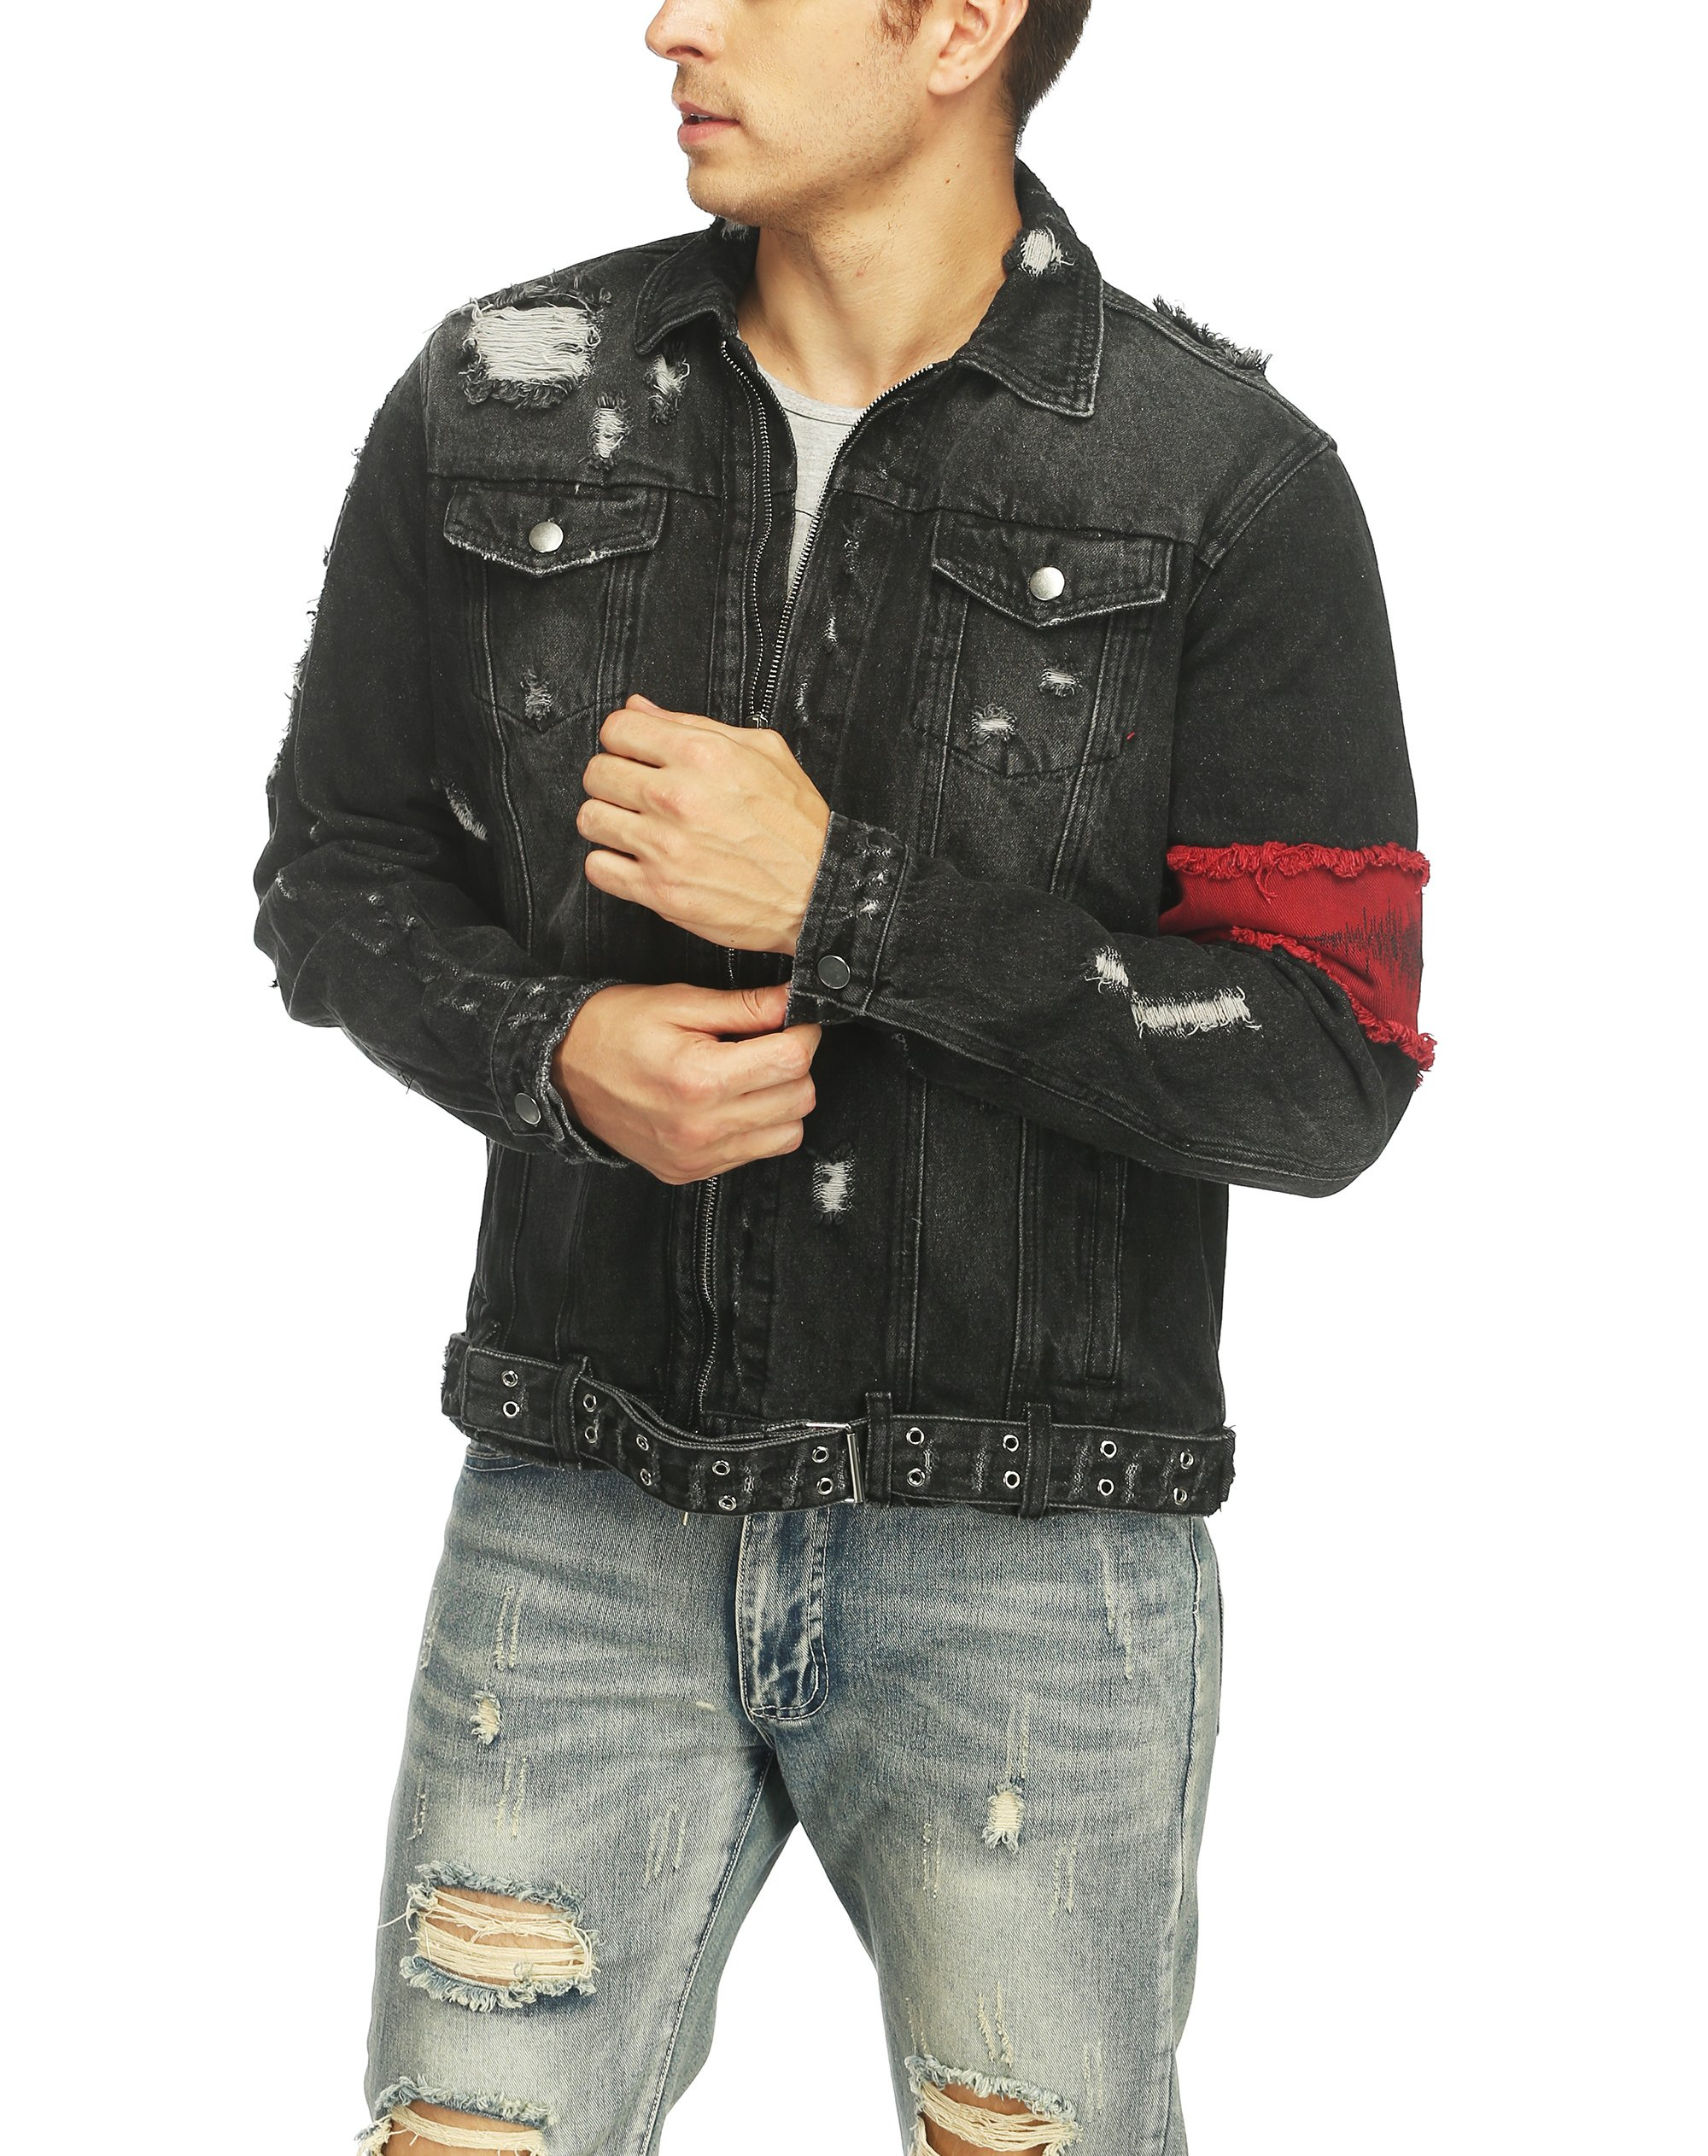 Men's Denim Jacket Ripped Distressed Jeans Jacket Rugged Trucker Jacket For Man (Black,XL) by iooho